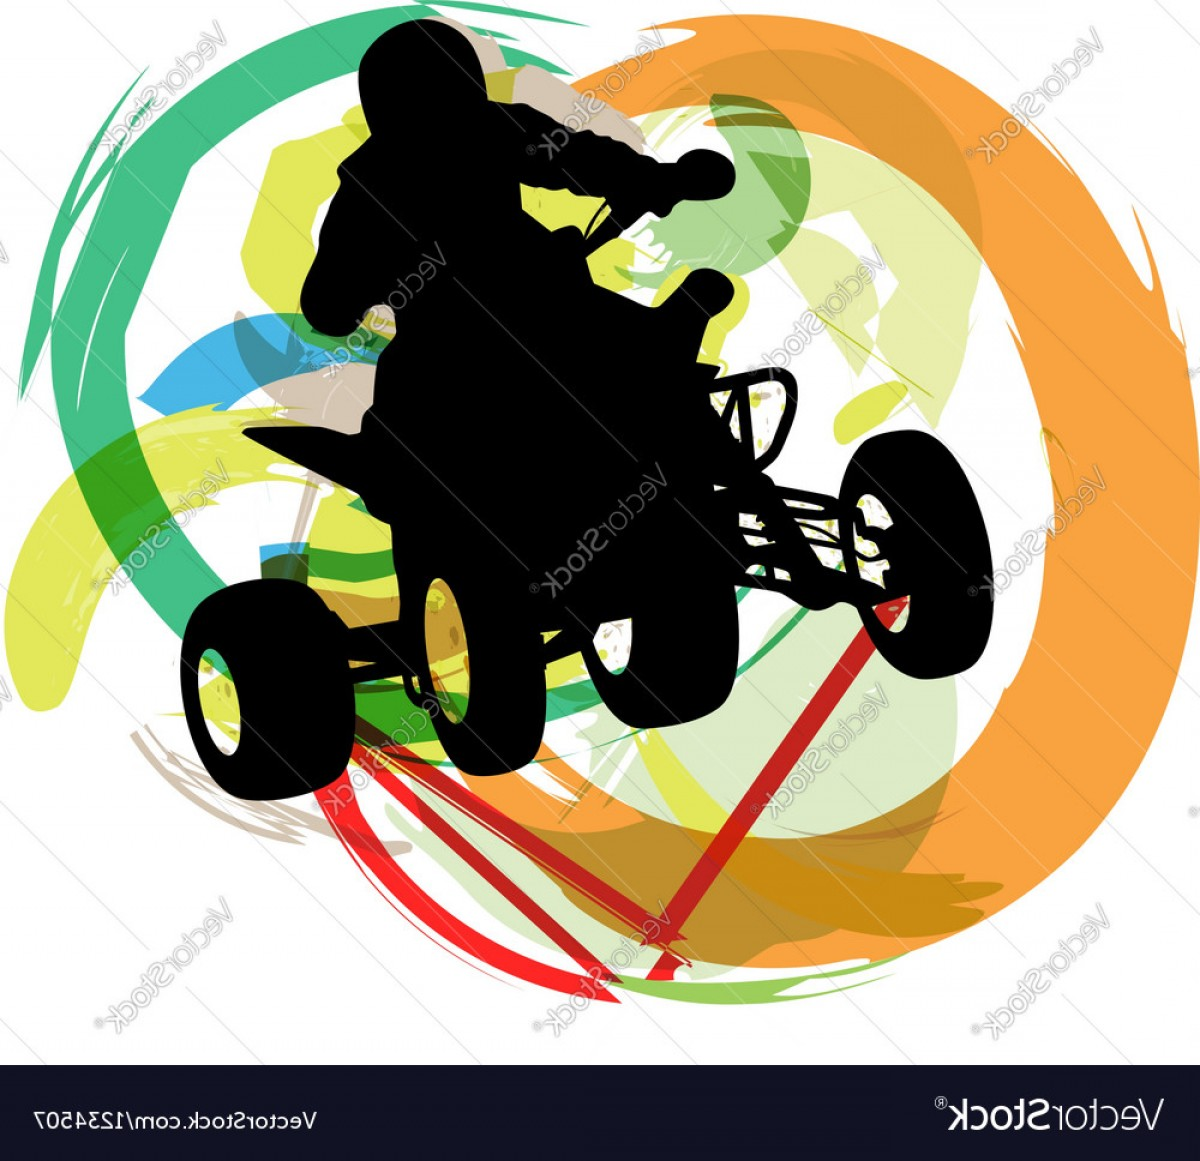 ATV Rider Vector: Sportsman Riding Quad Bike Vector